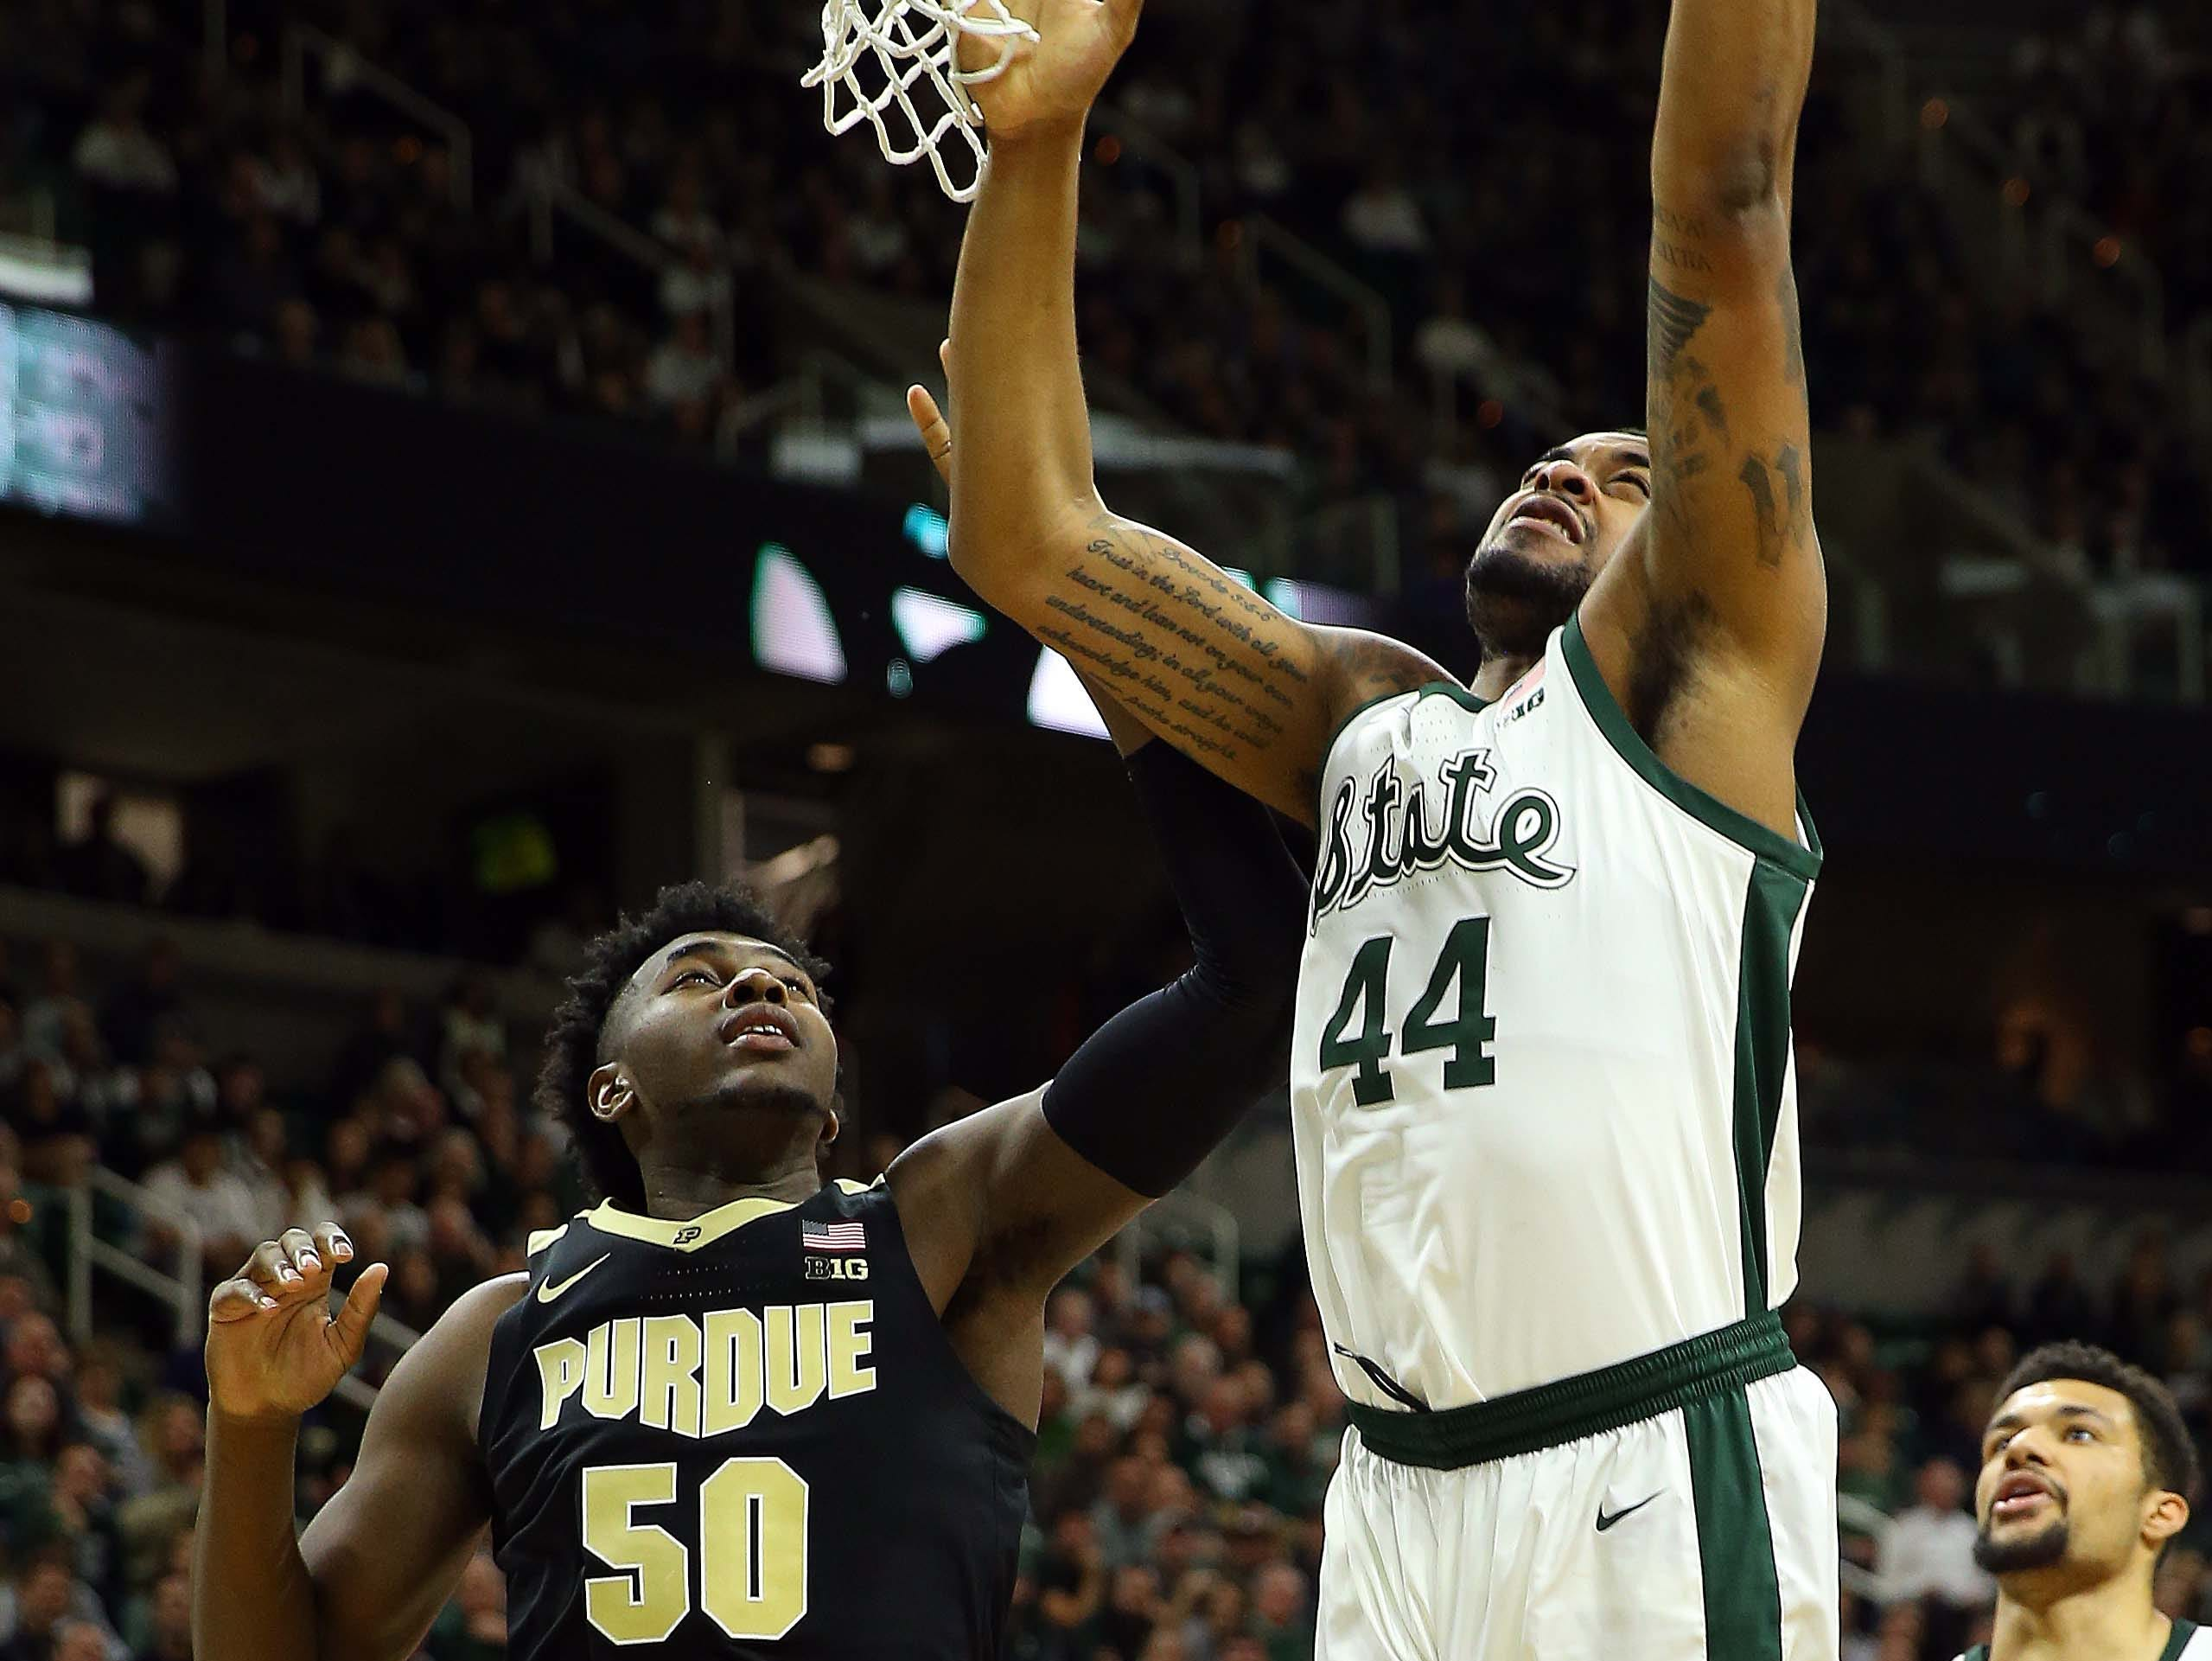 Jan 8, 2019; East Lansing, MI, USA; Michigan State Spartans forward Nick Ward (44) is defended by Purdue Boilermakers forward Trevion Williams (50) during the second half of a game at the Breslin Center. Mandatory Credit: Mike Carter-USA TODAY Sports